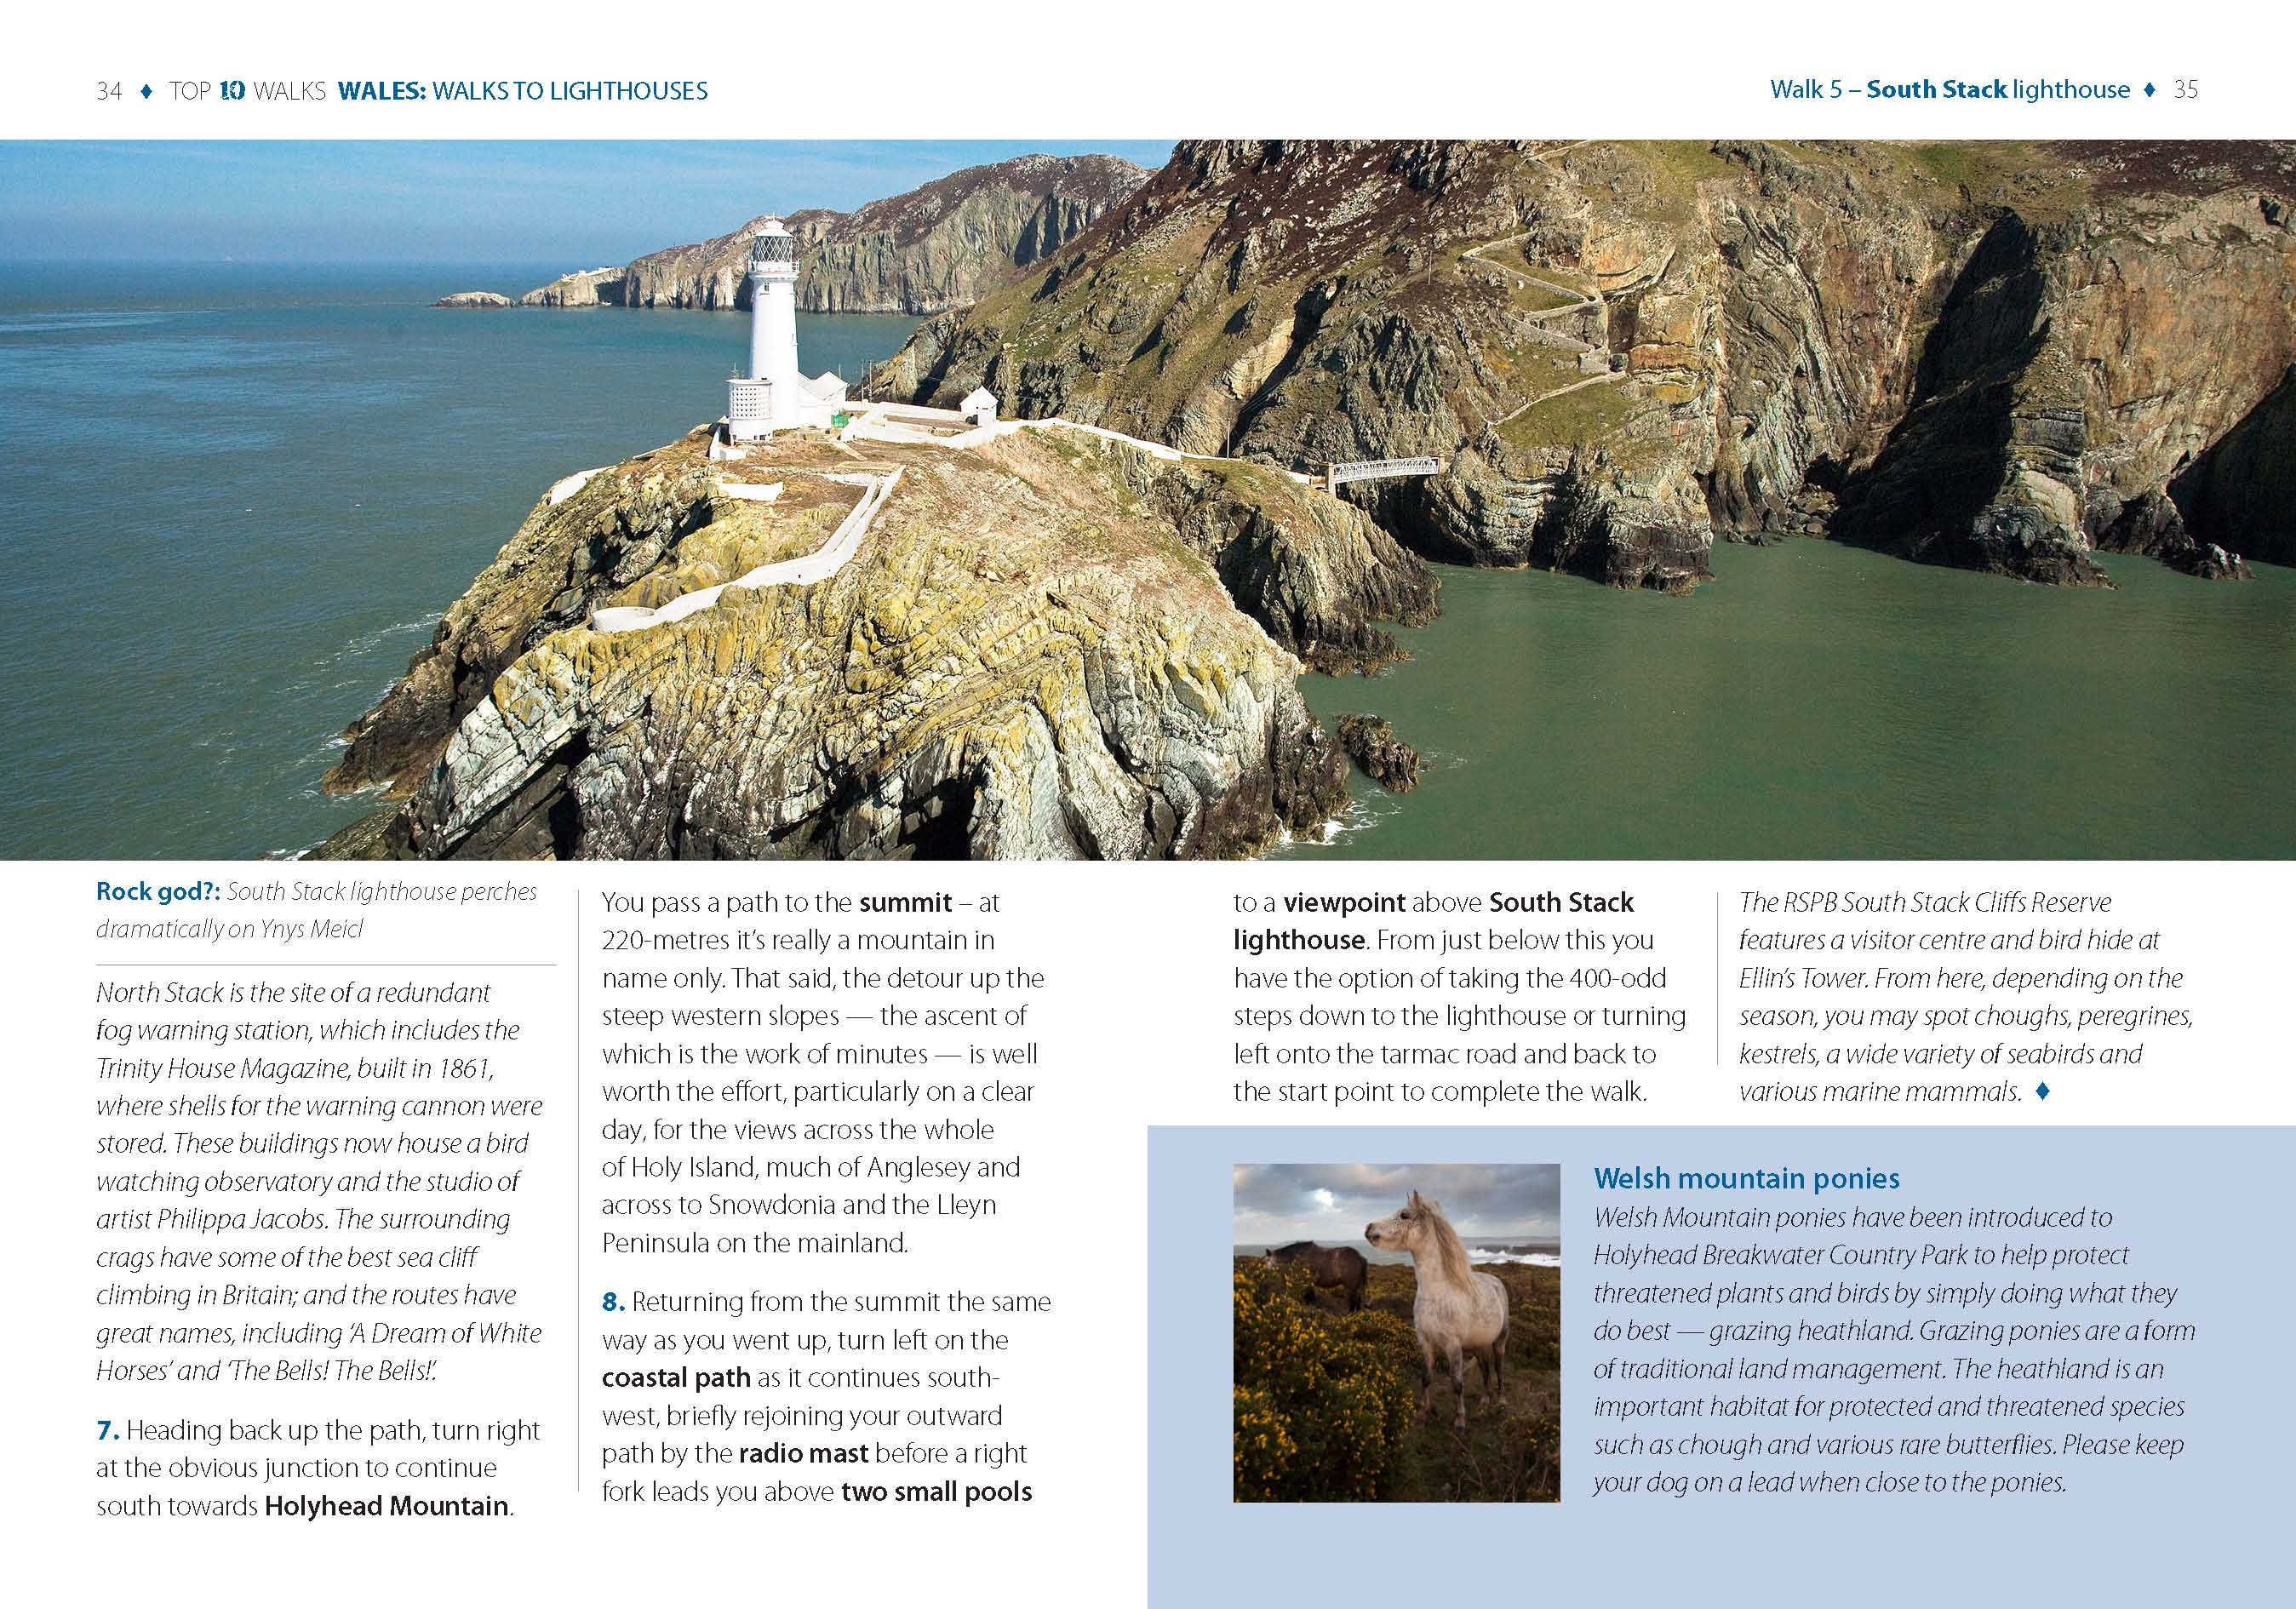 Top 10 wales Coast Walks to Lighthouses